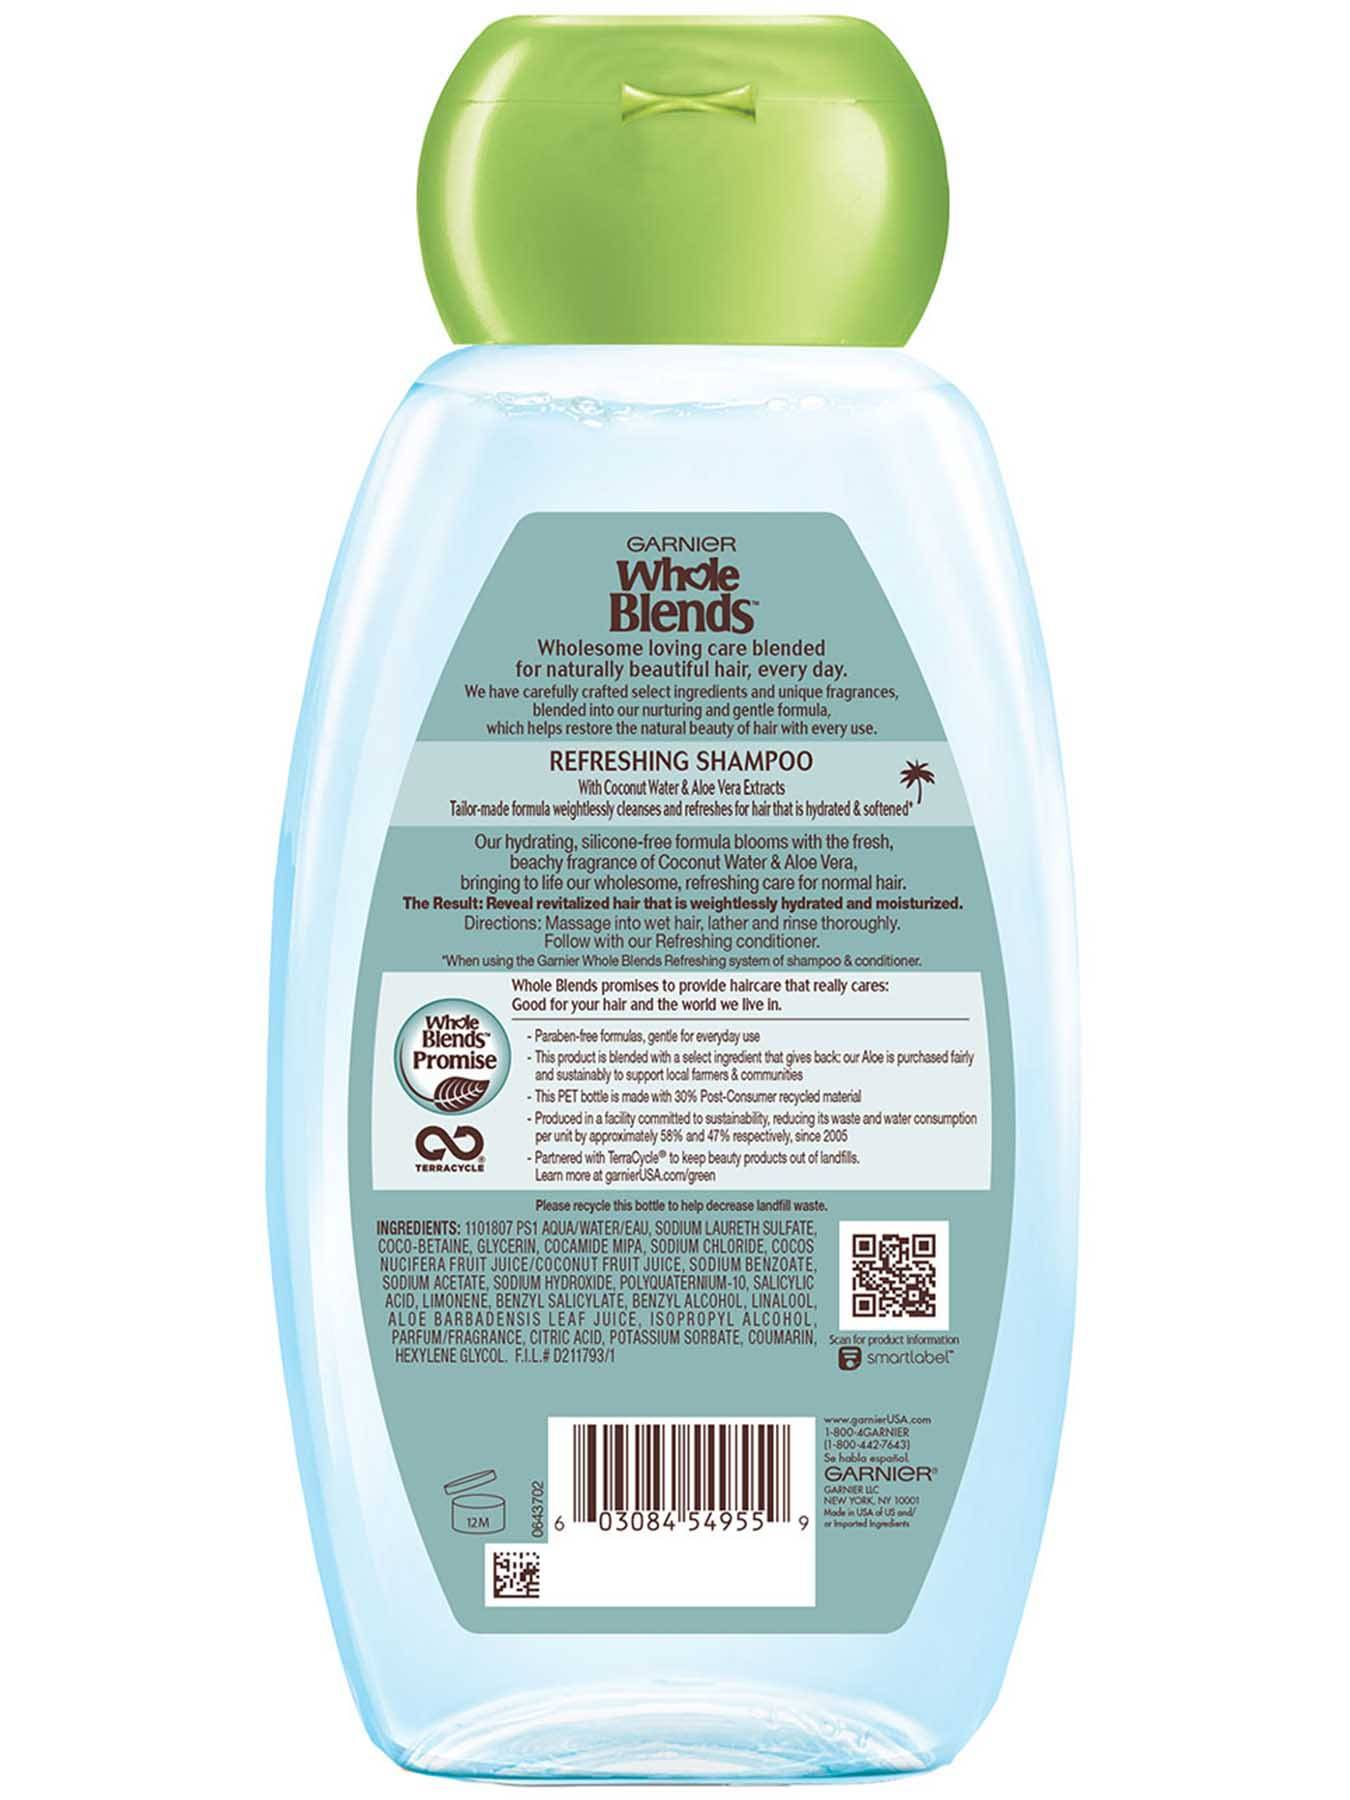 Back view of Hydrating Shampoo with Coconut Water & Aloe Vera extracts.